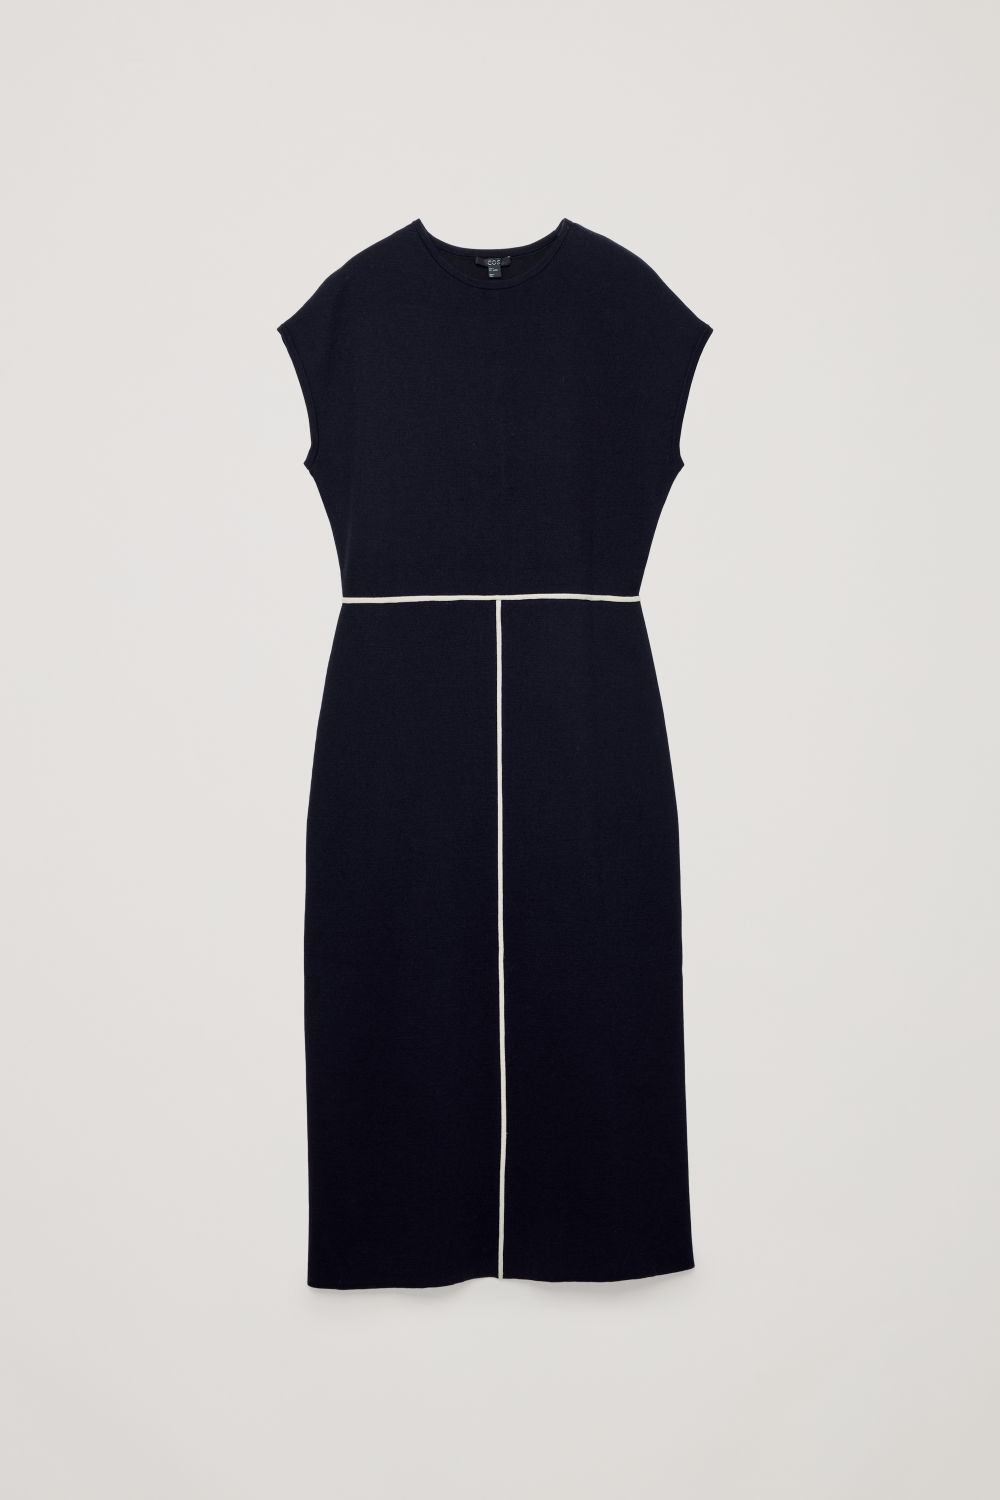 Contrast Trim Merino Knit Dress